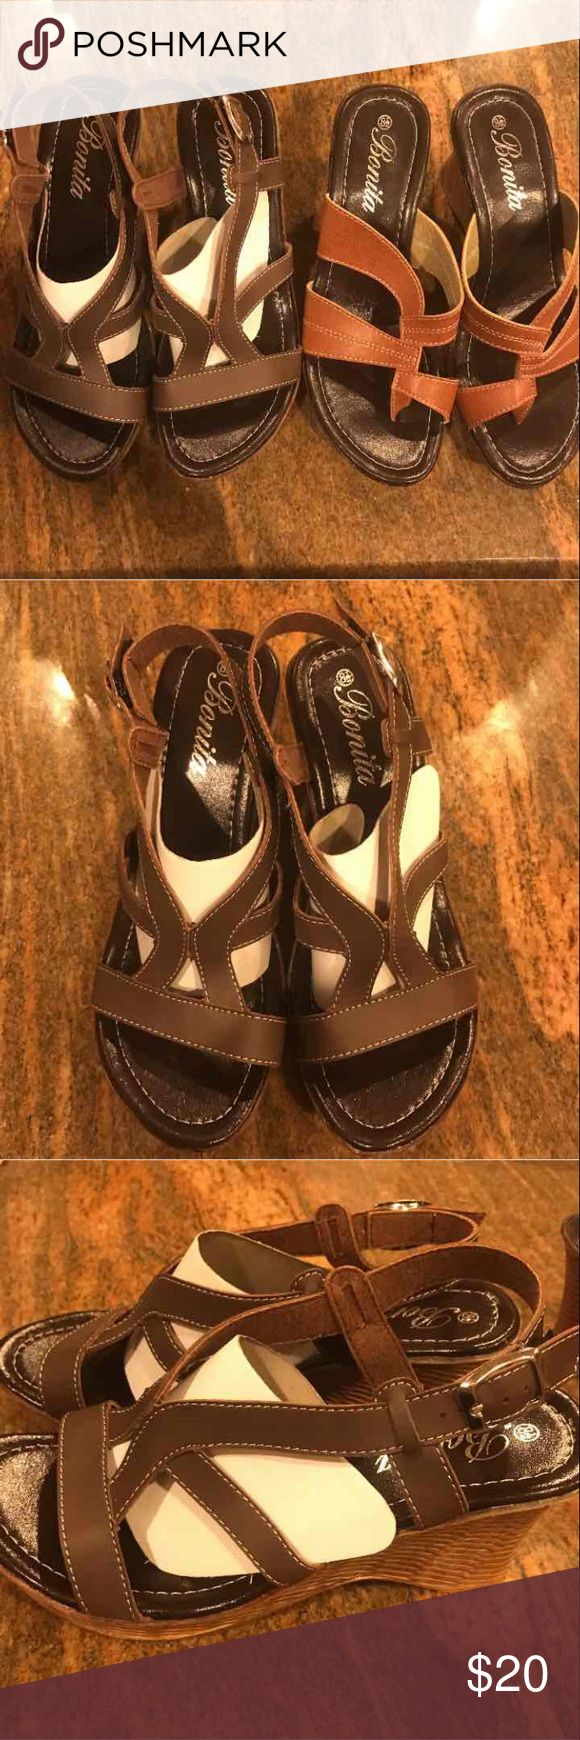 Brown Heeled Sandals Camel Heeled Sandals Wedges Both are brand new, with box. Will not separate, price is firm. Perfect for the spring and summer. Spruce up your footwear with this gorgeous wedge set.  Size-8.5 Shoes Wedges